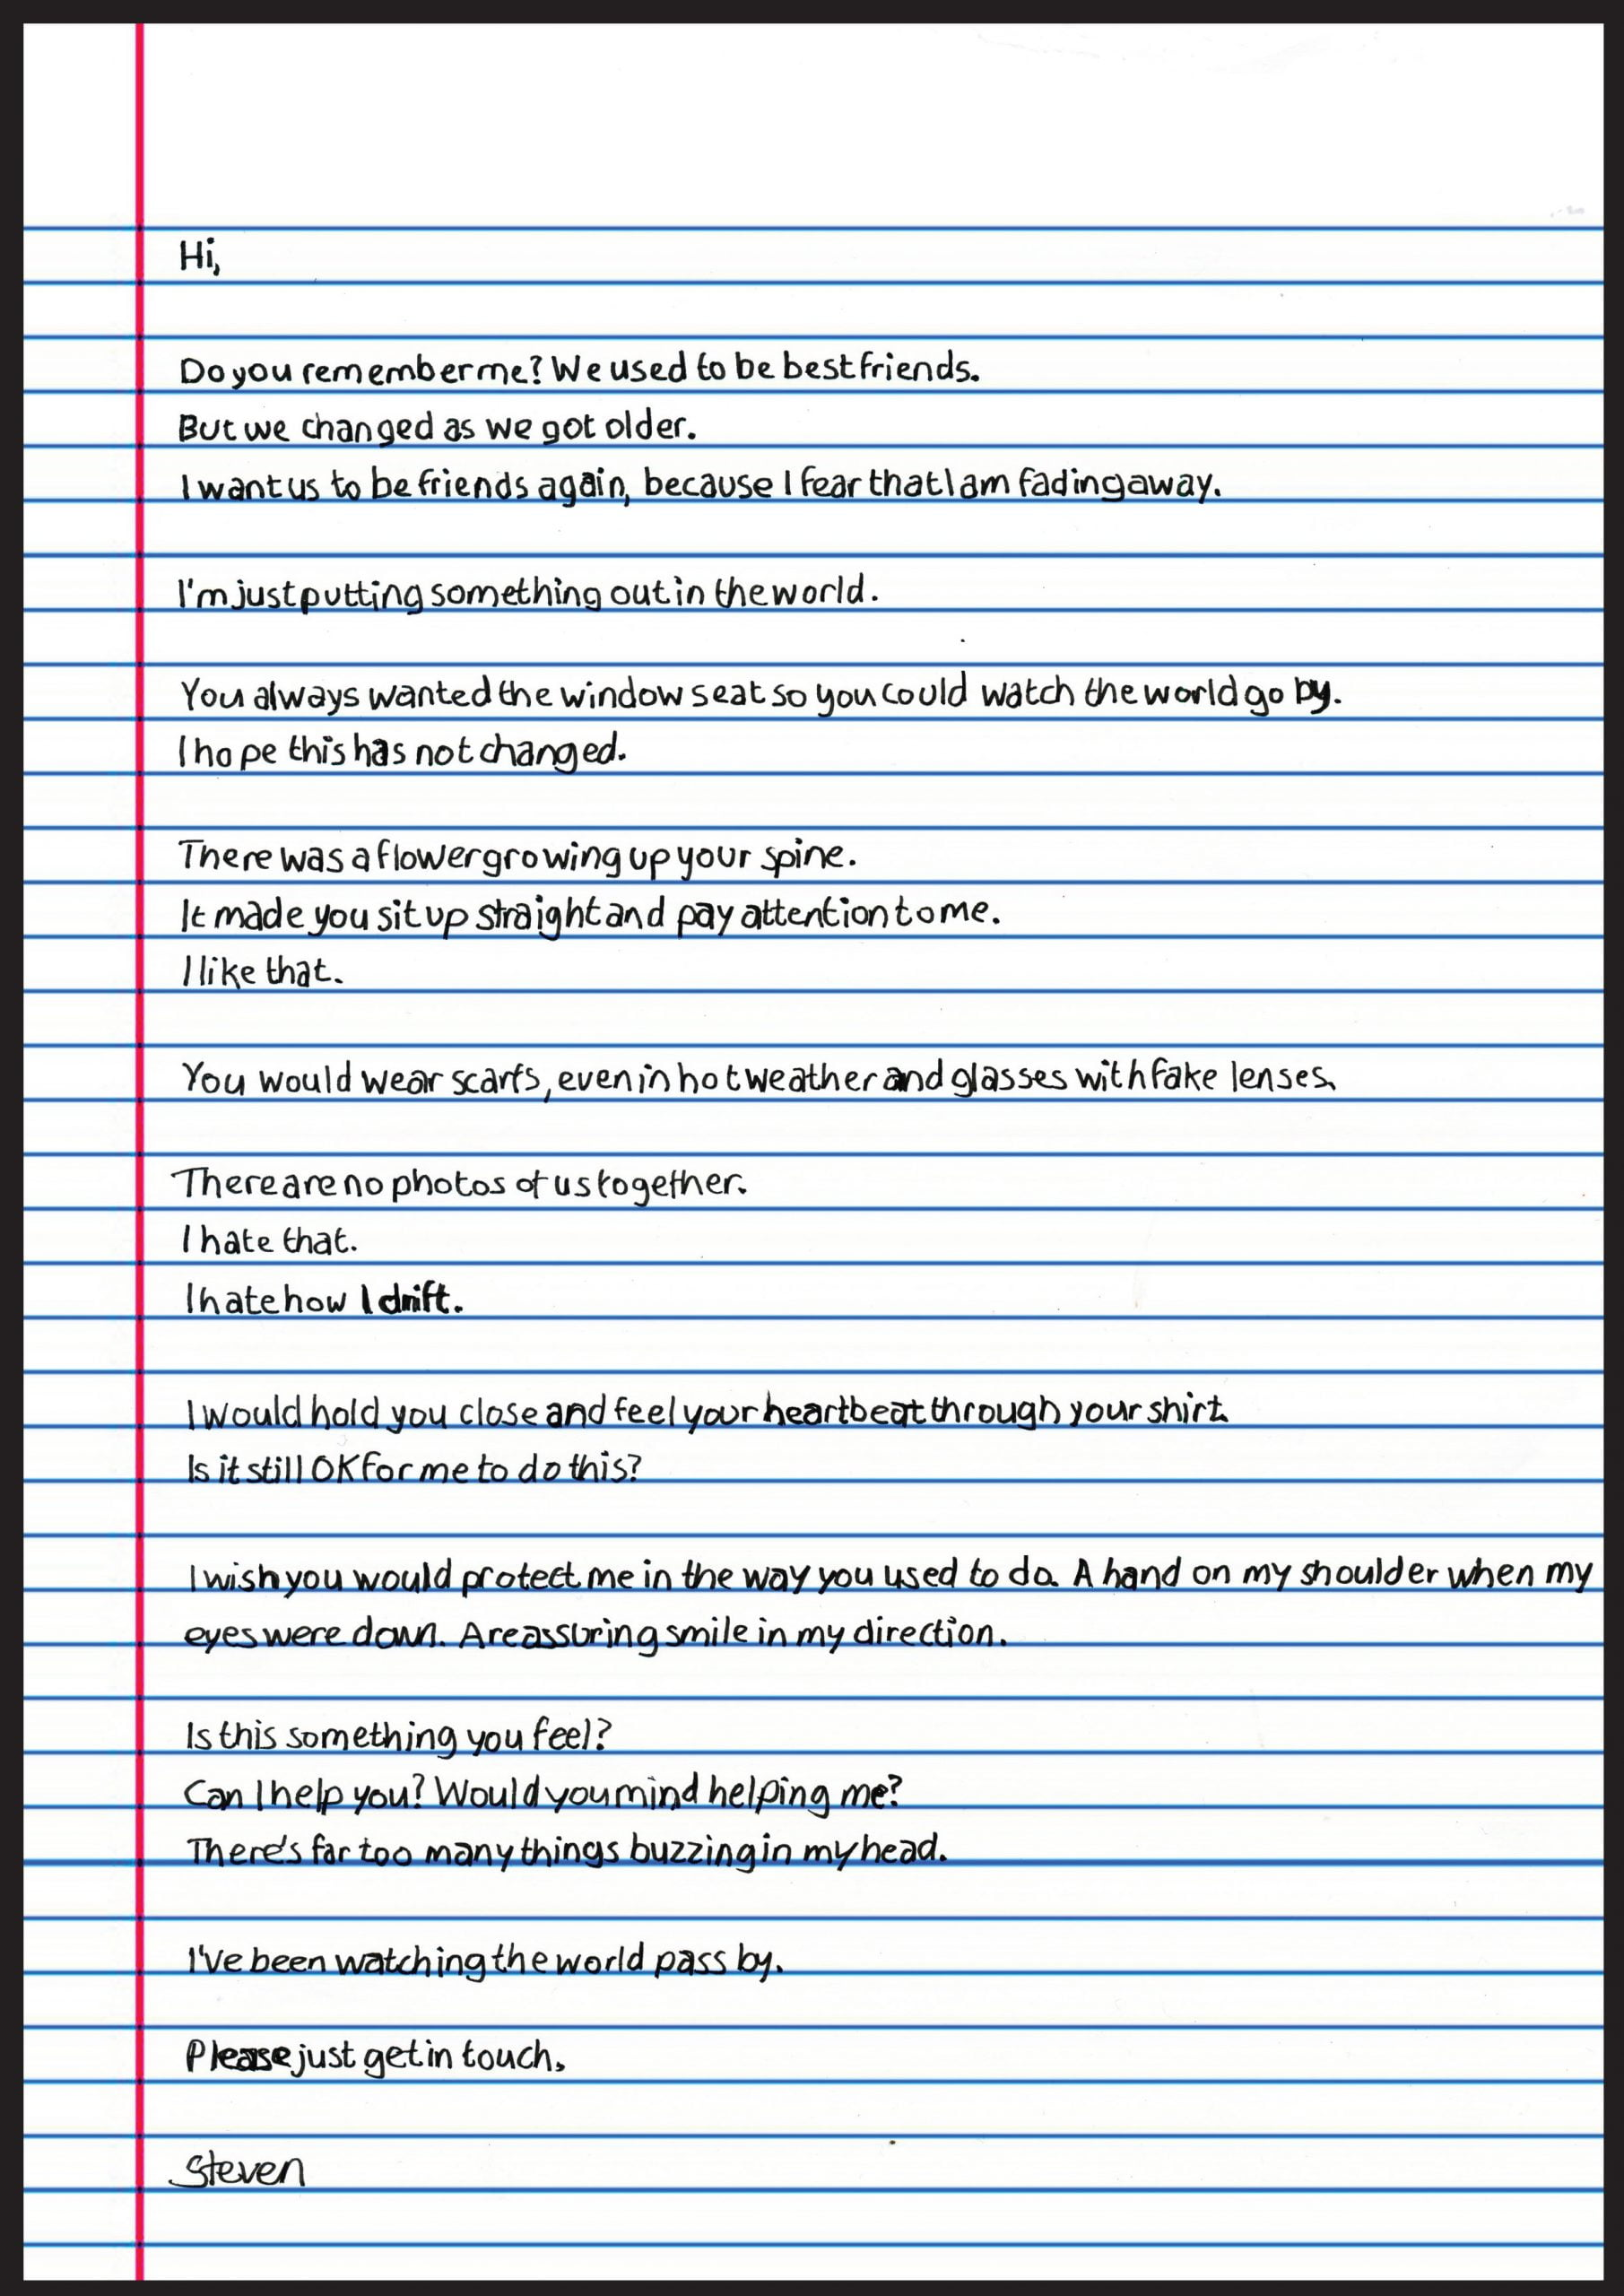 """On office paper horizontal lines are vivid blue and the margin line down the left hand size is bright red. The writing is in black; childlike and begins with: """"Hi, Do you remember me?"""""""